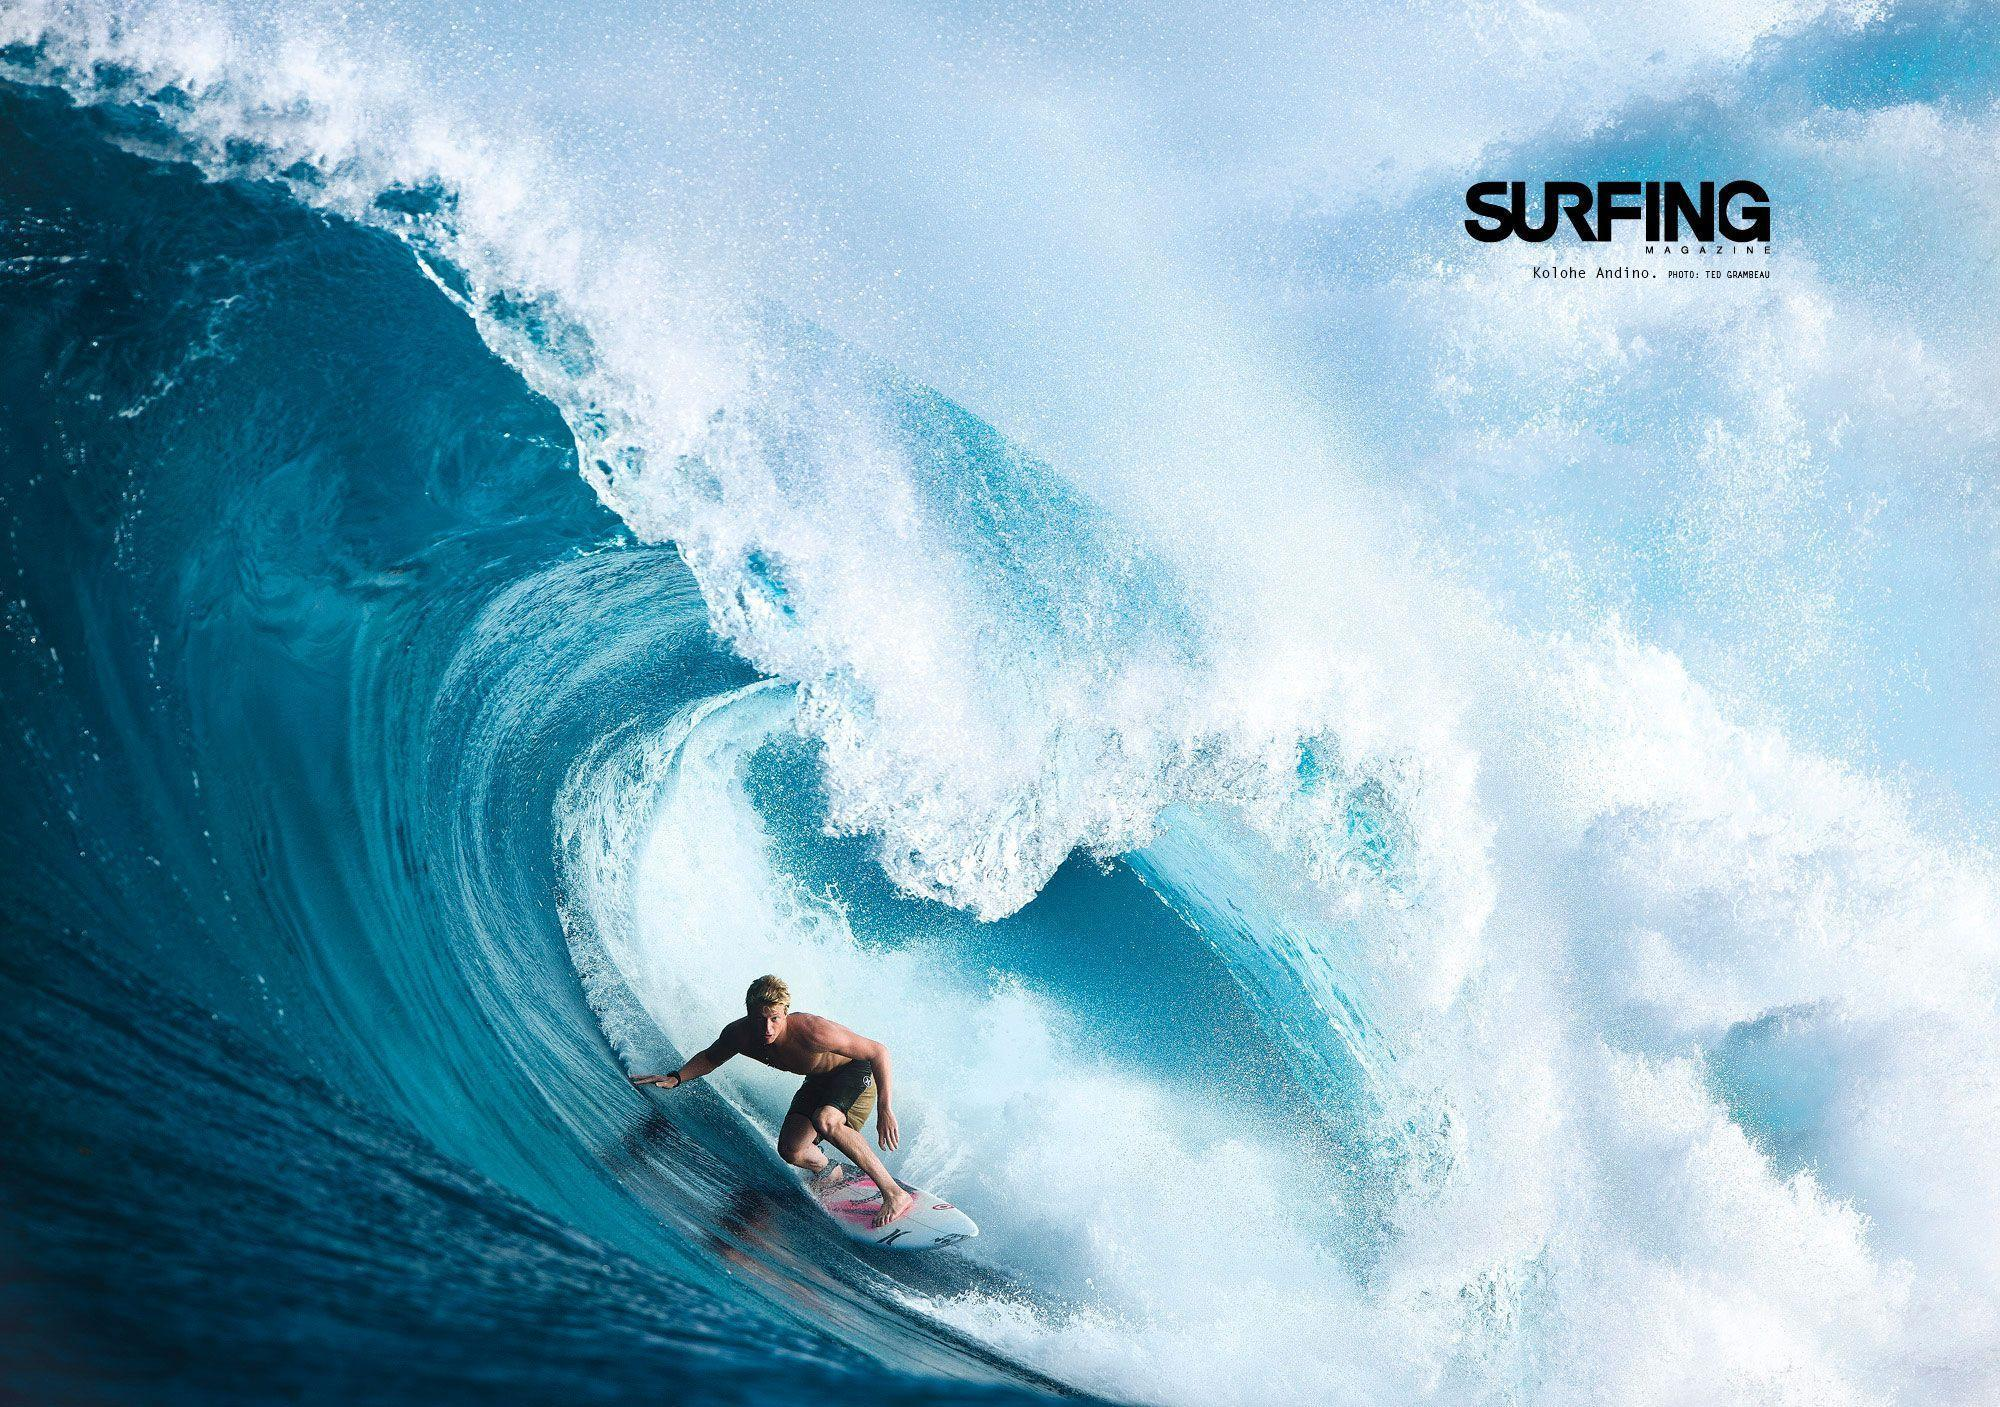 surfing wallpaper full hd - photo #23